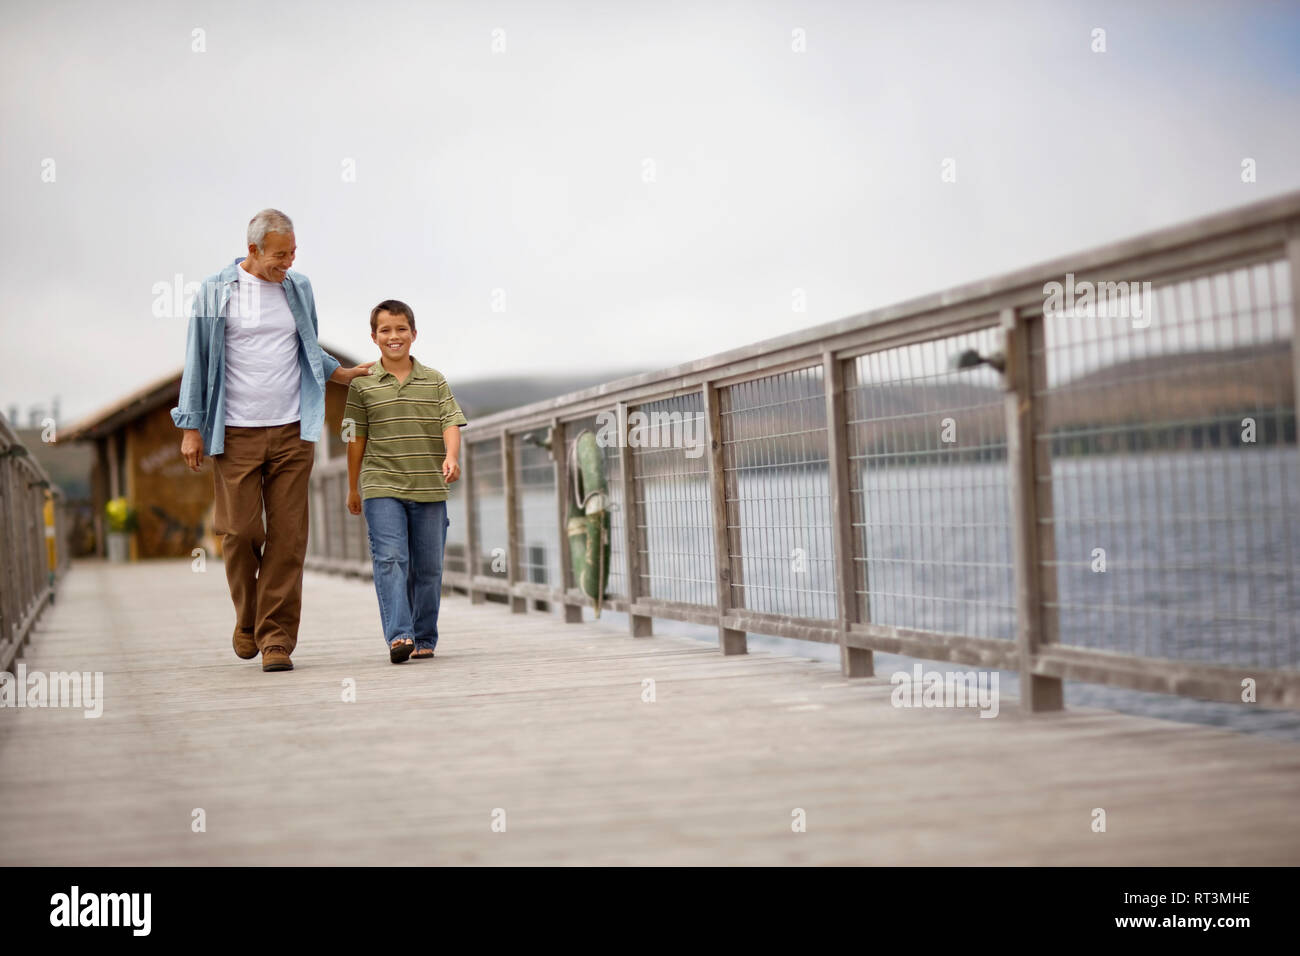 Portrait of a young boy walking along a pier with his mature grandfather. Stock Photo